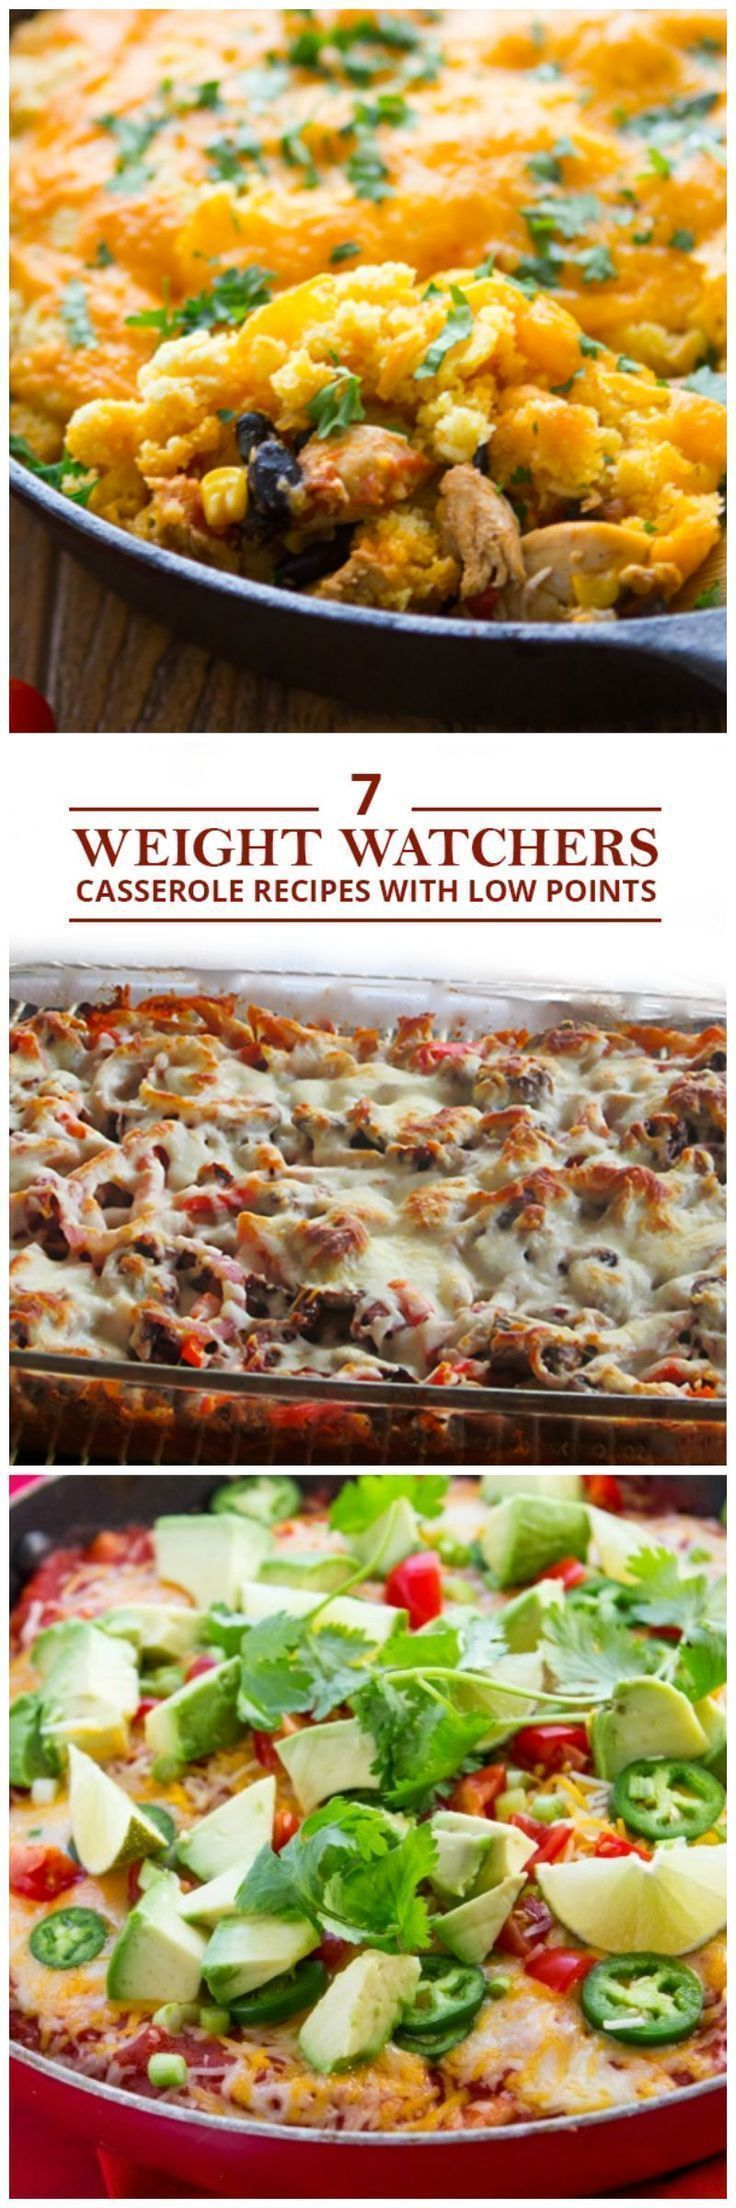 These healthy casserole recipes bring all the flavor without all the added fat. Here are 7 Weight Watchers Casseroles with Low Points! #weightwatchers